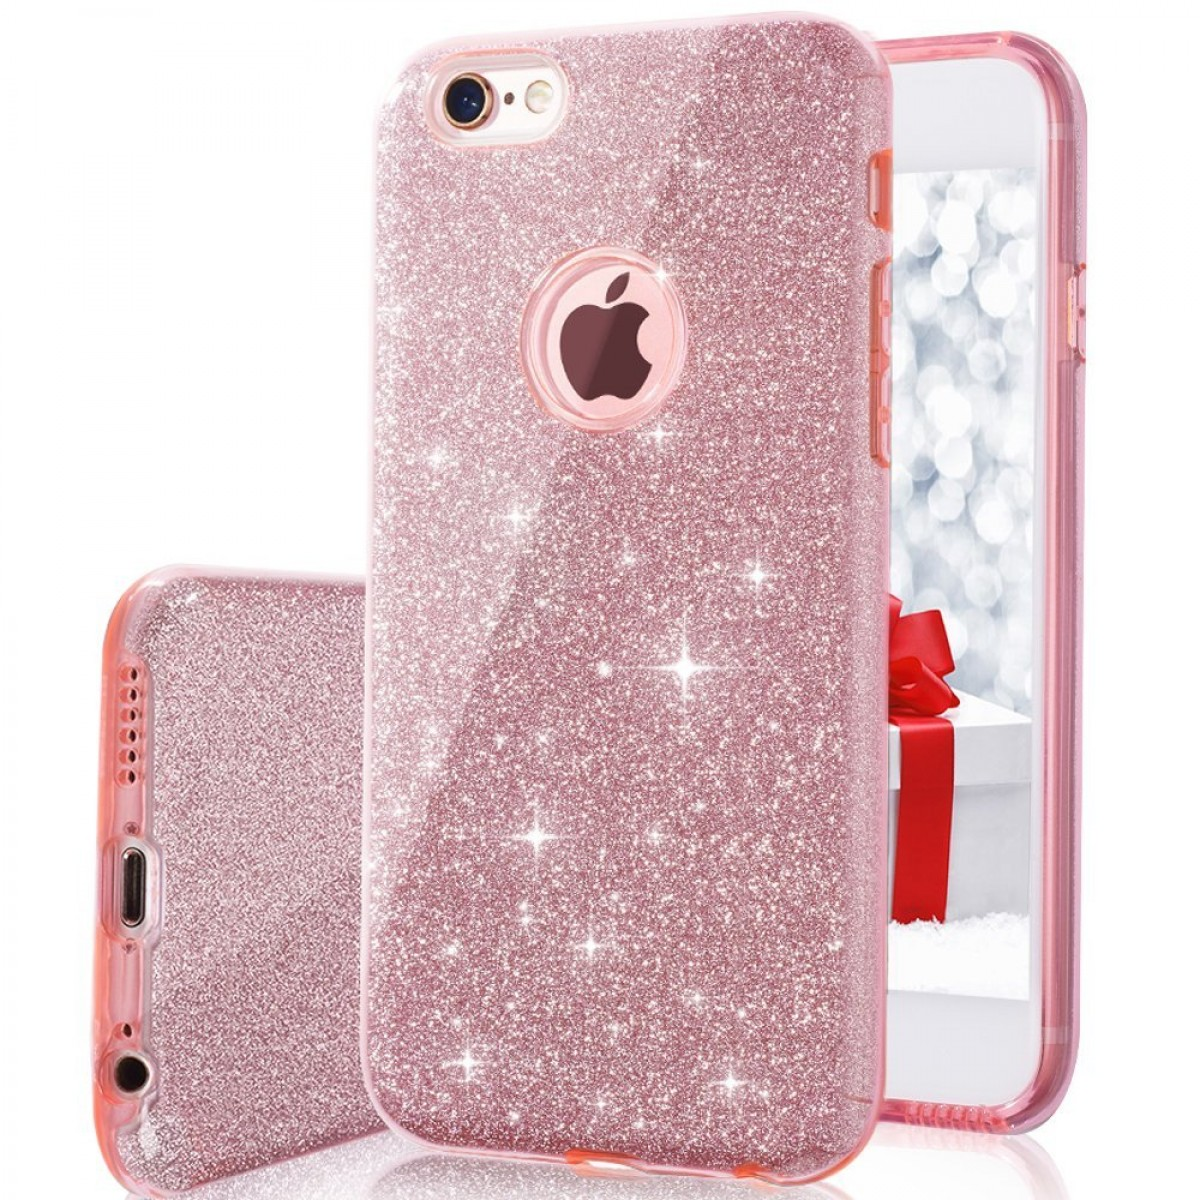 sparkly phone case iphone 6